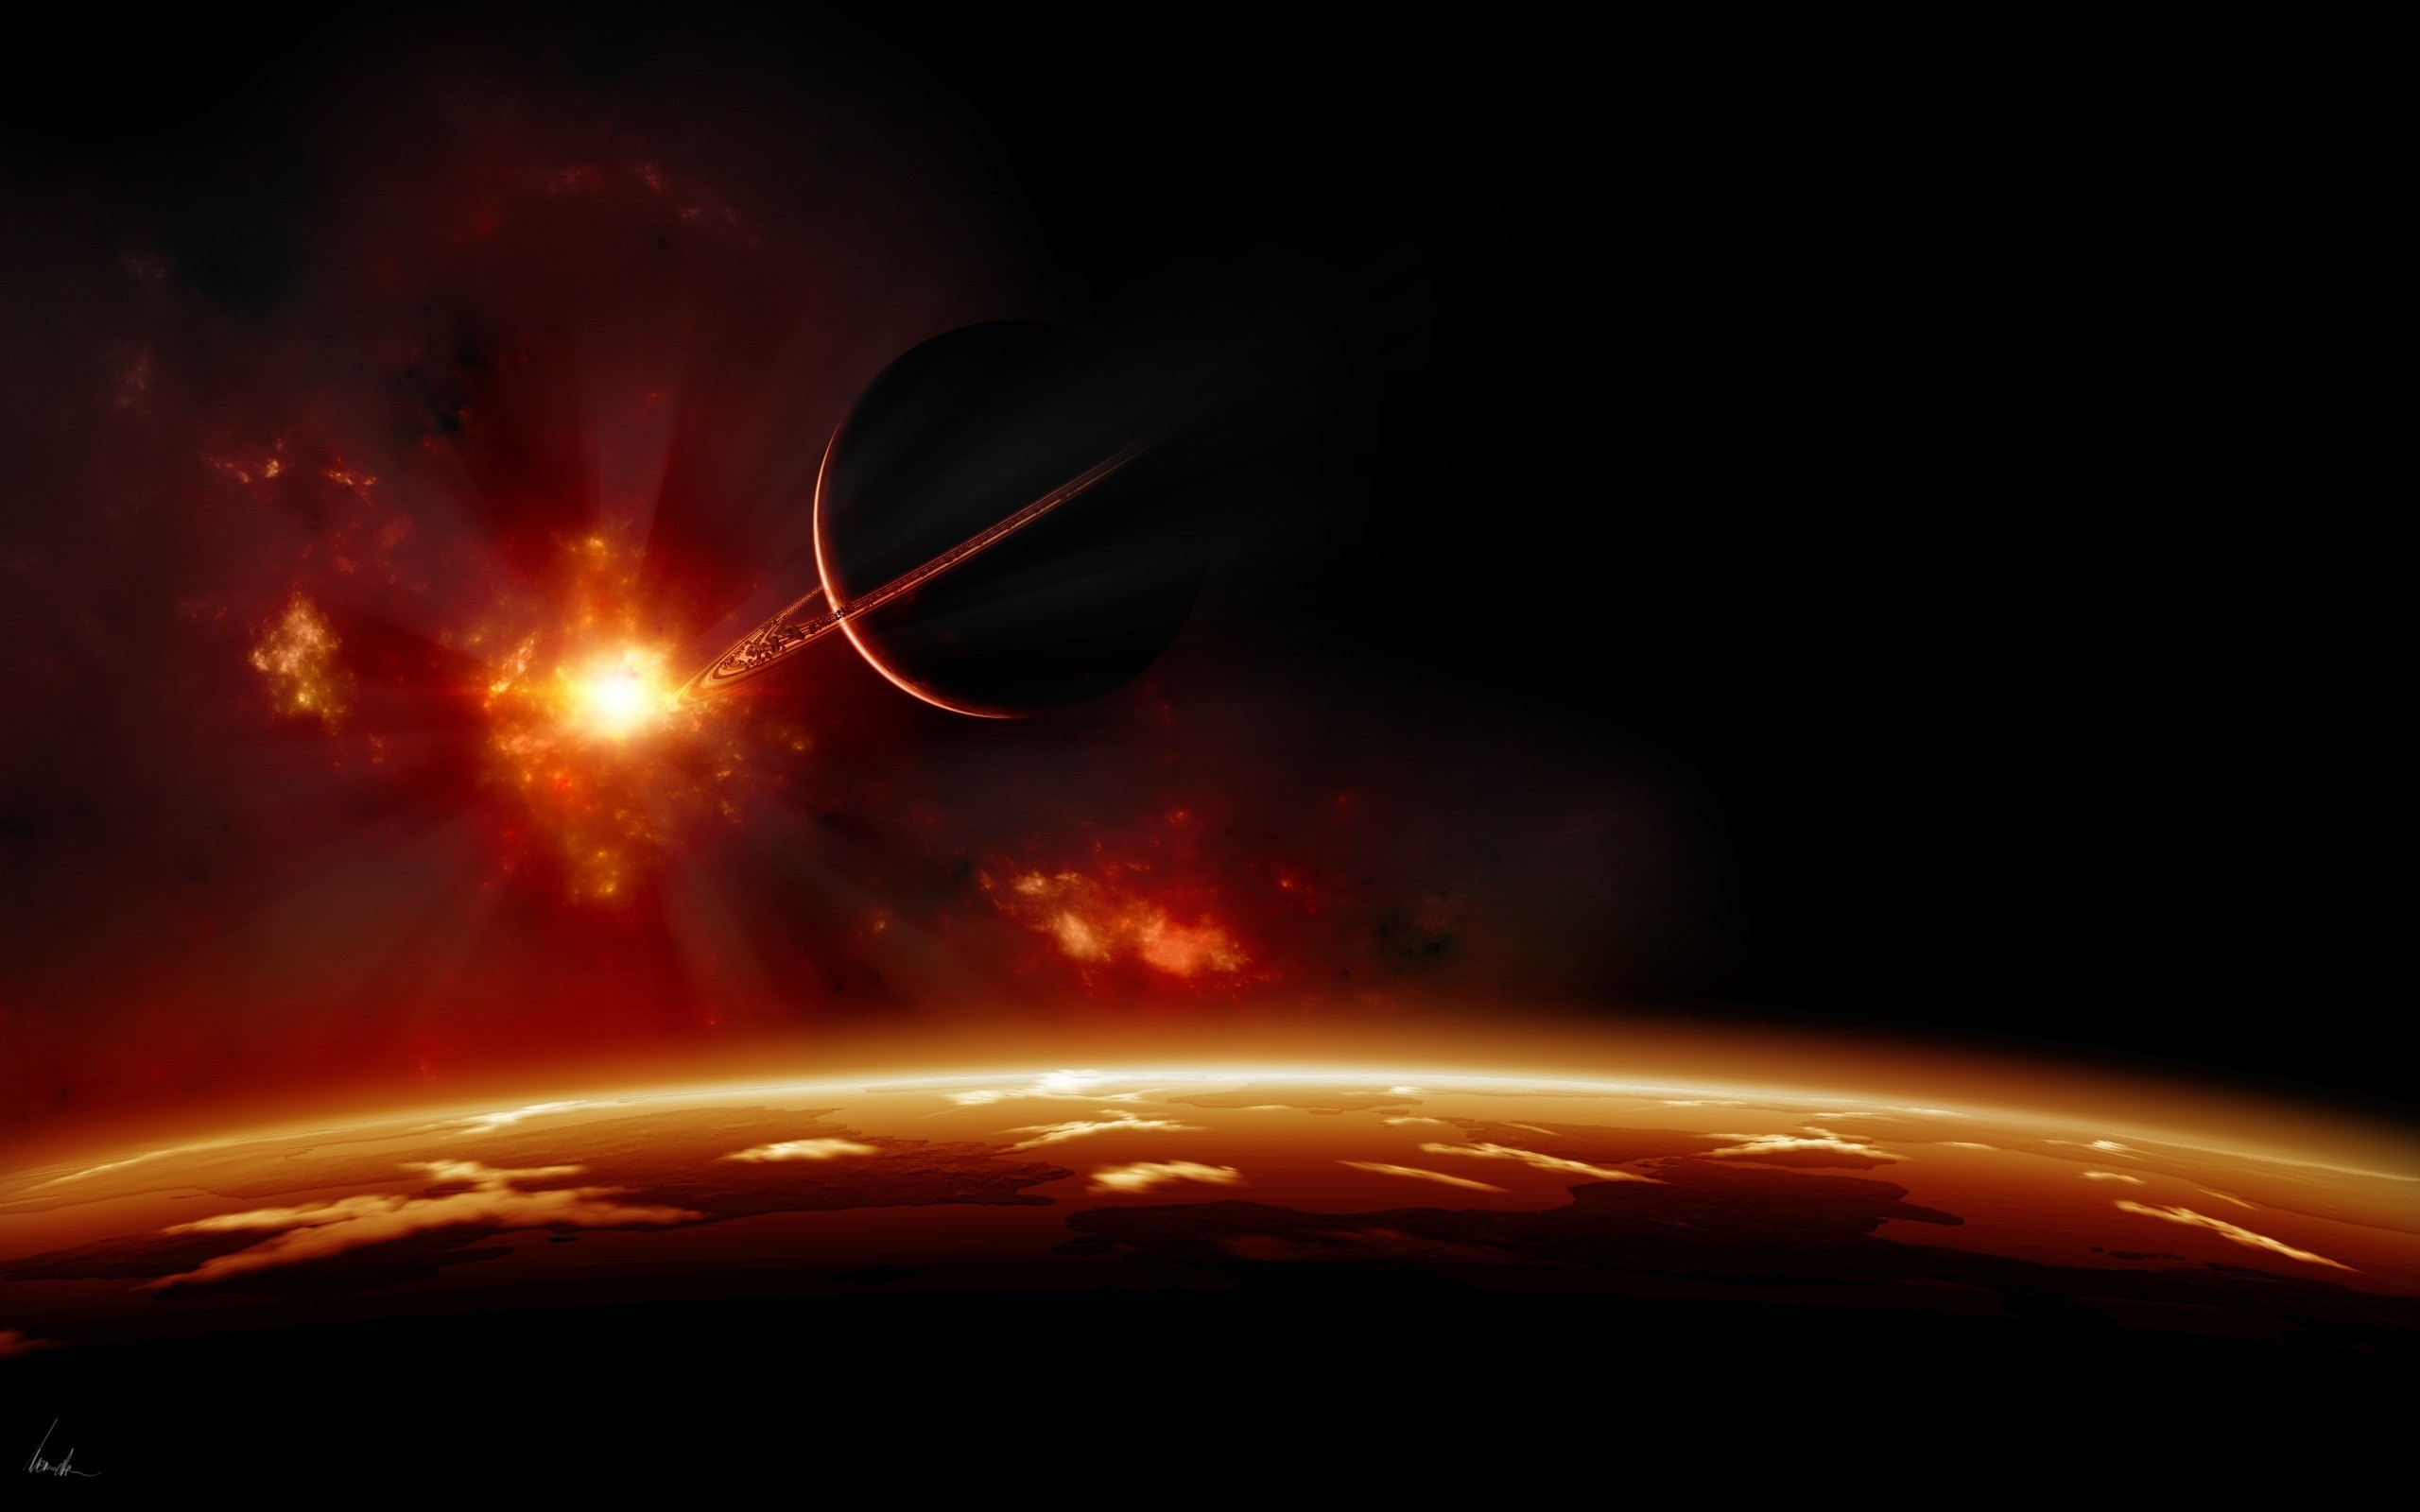 Space Landscape Wallpaper Space landscape